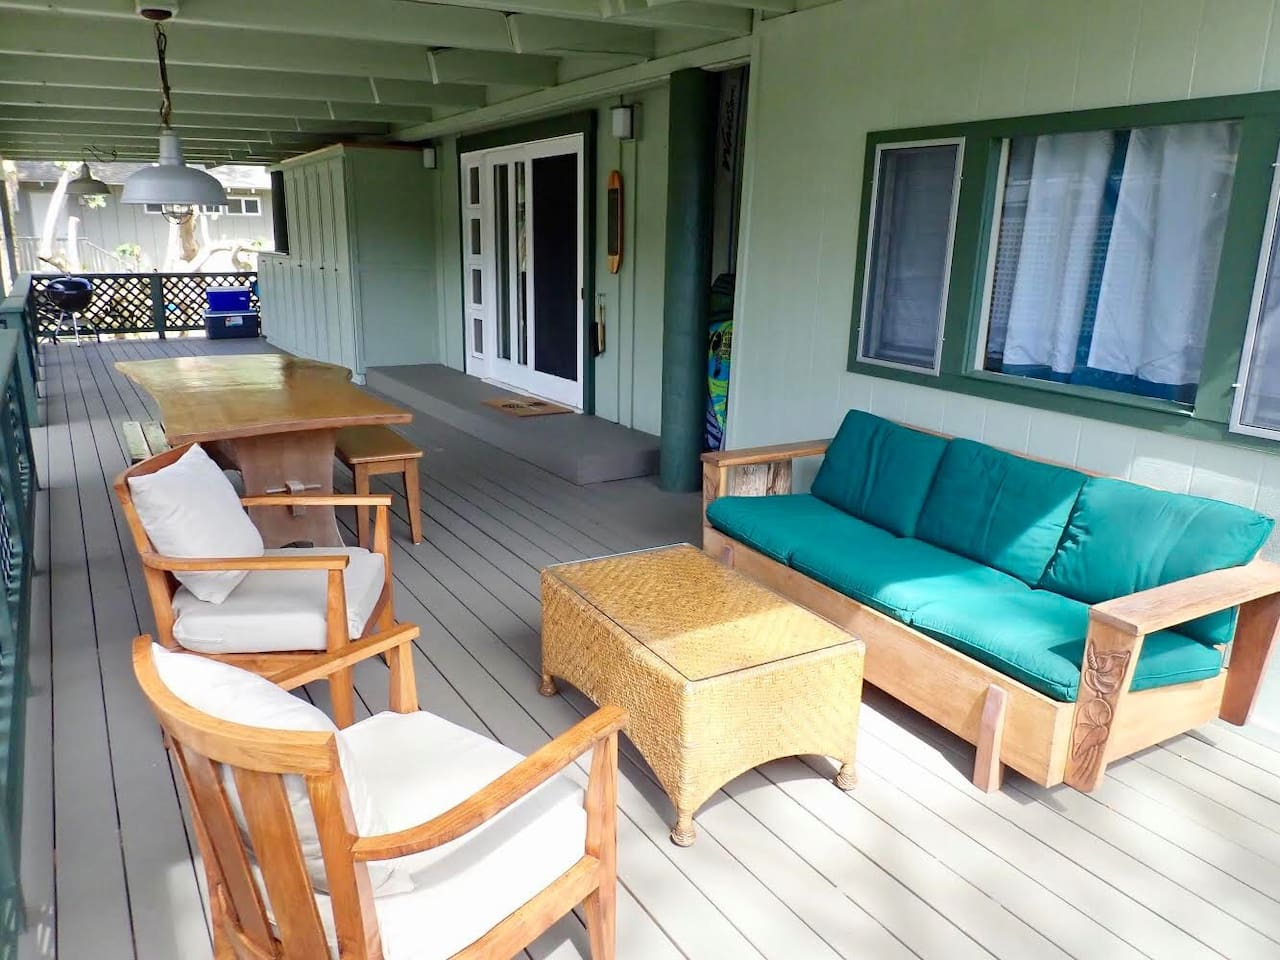 Our leeward lanai with comfortable seating and outdoor dining table.  Washer/dryer is in the cabinet on the far end.